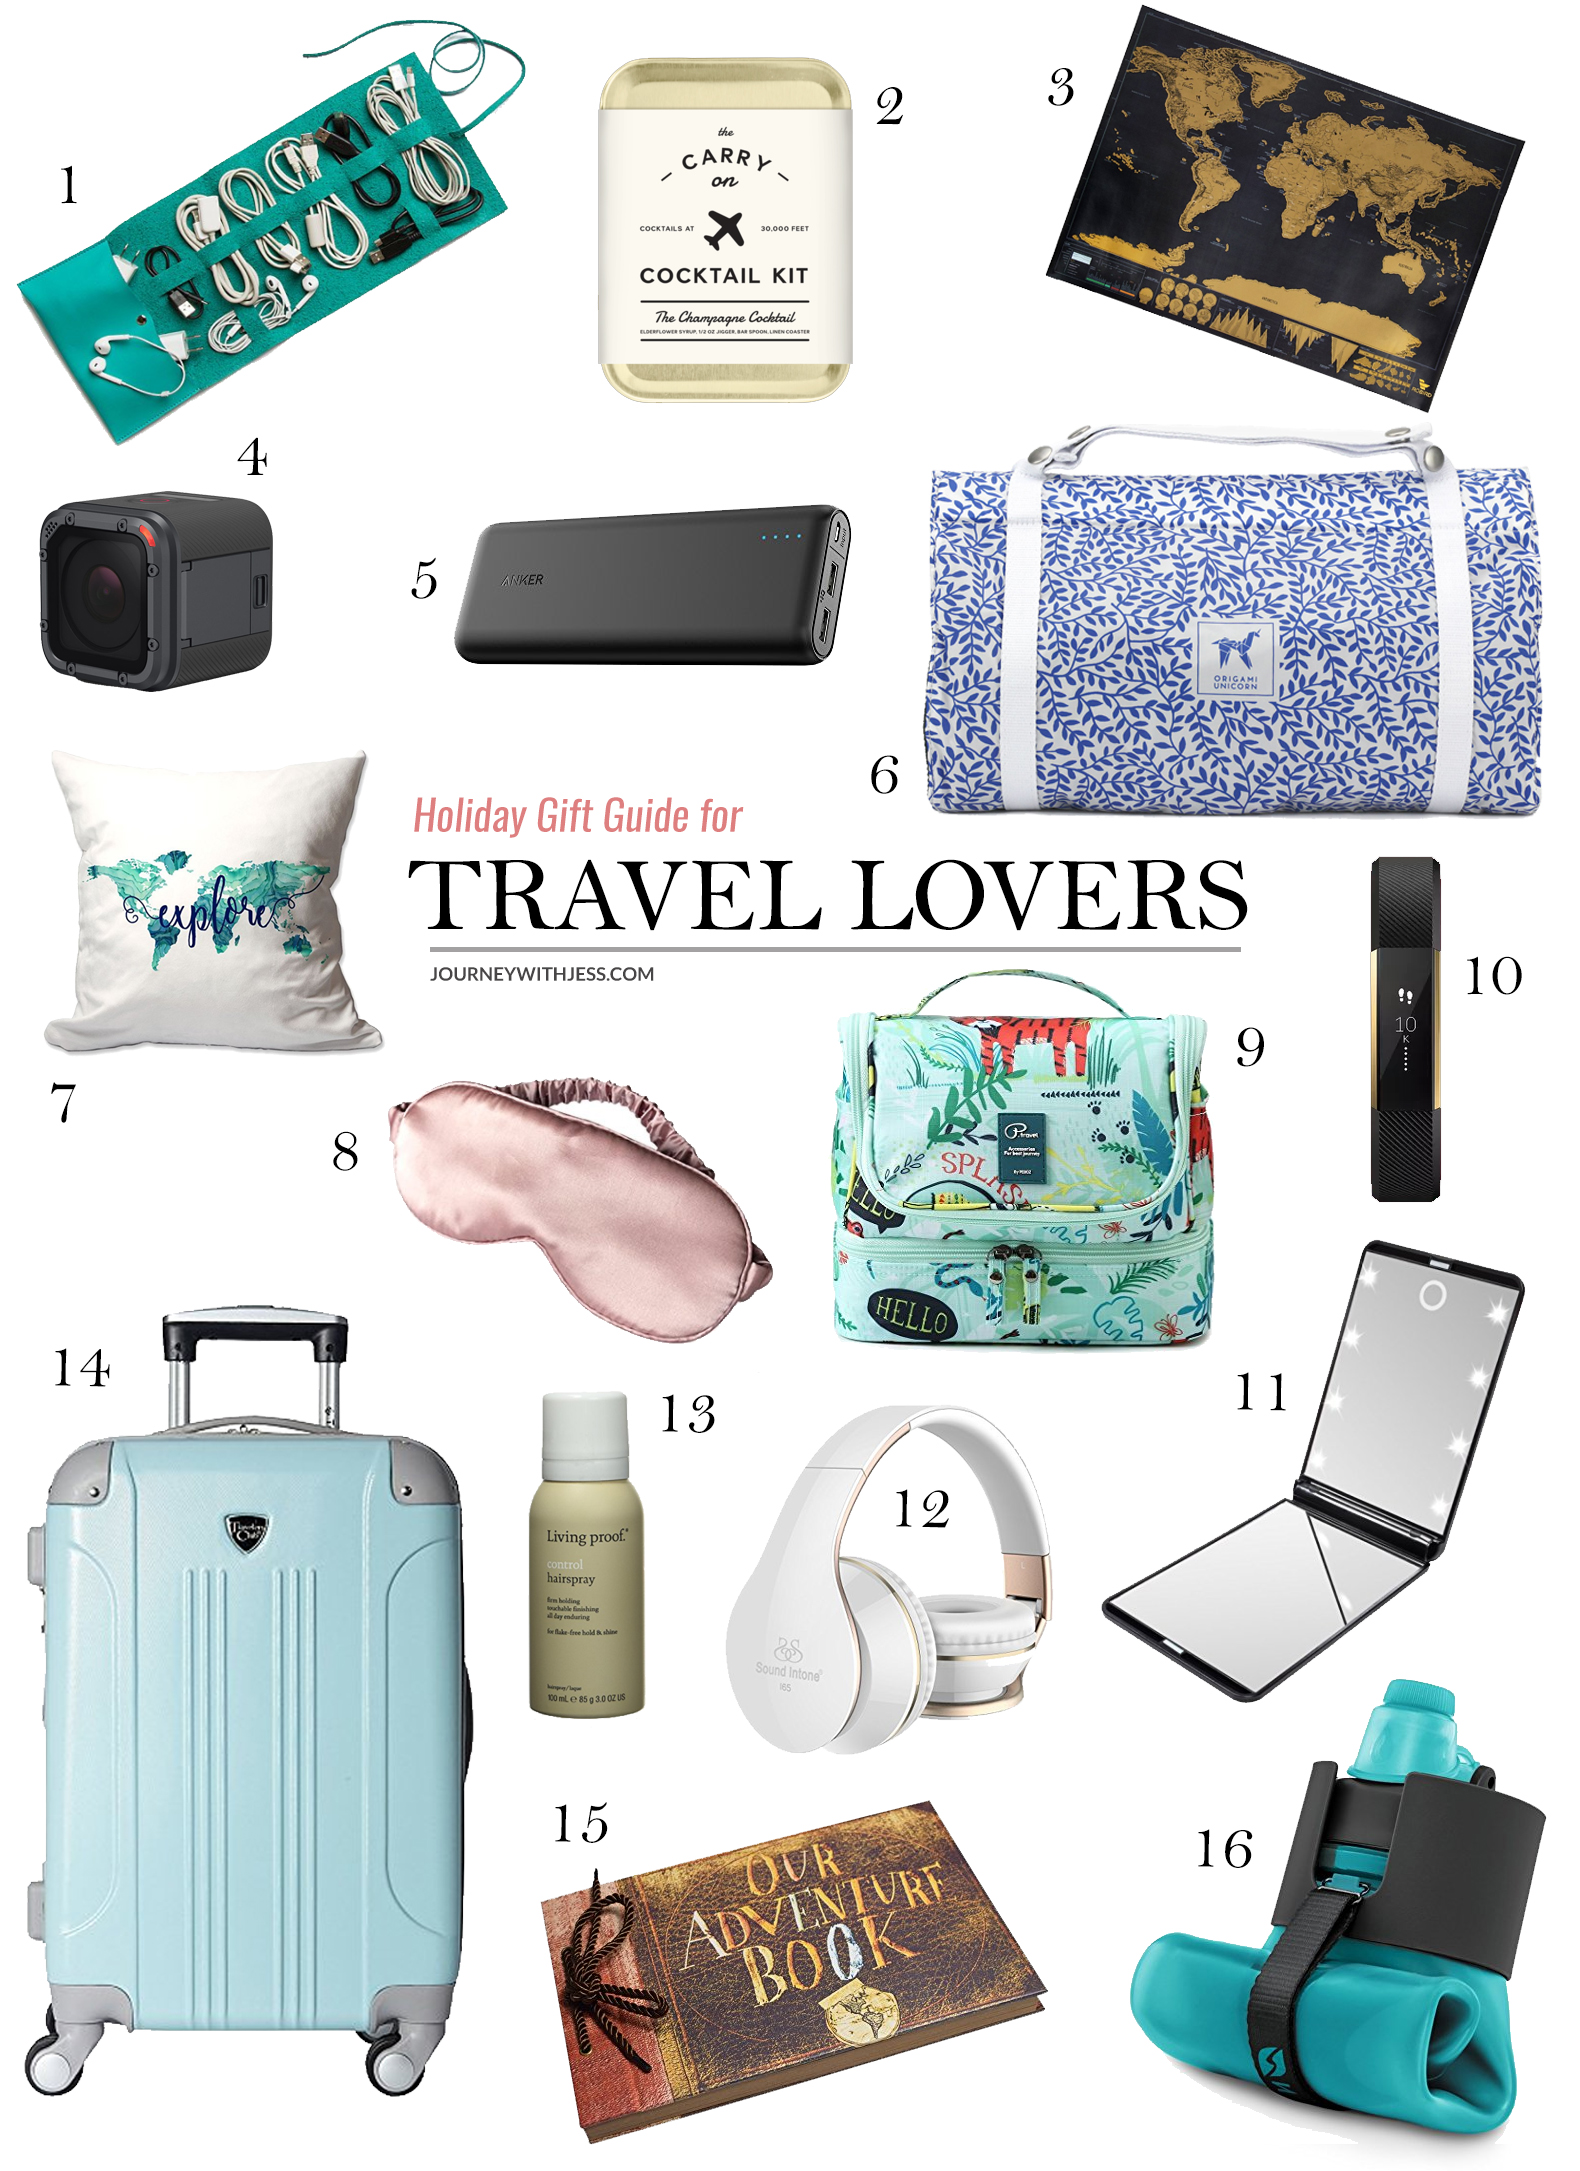 holiday-gift-guide-for-travel-lovers-blogpost